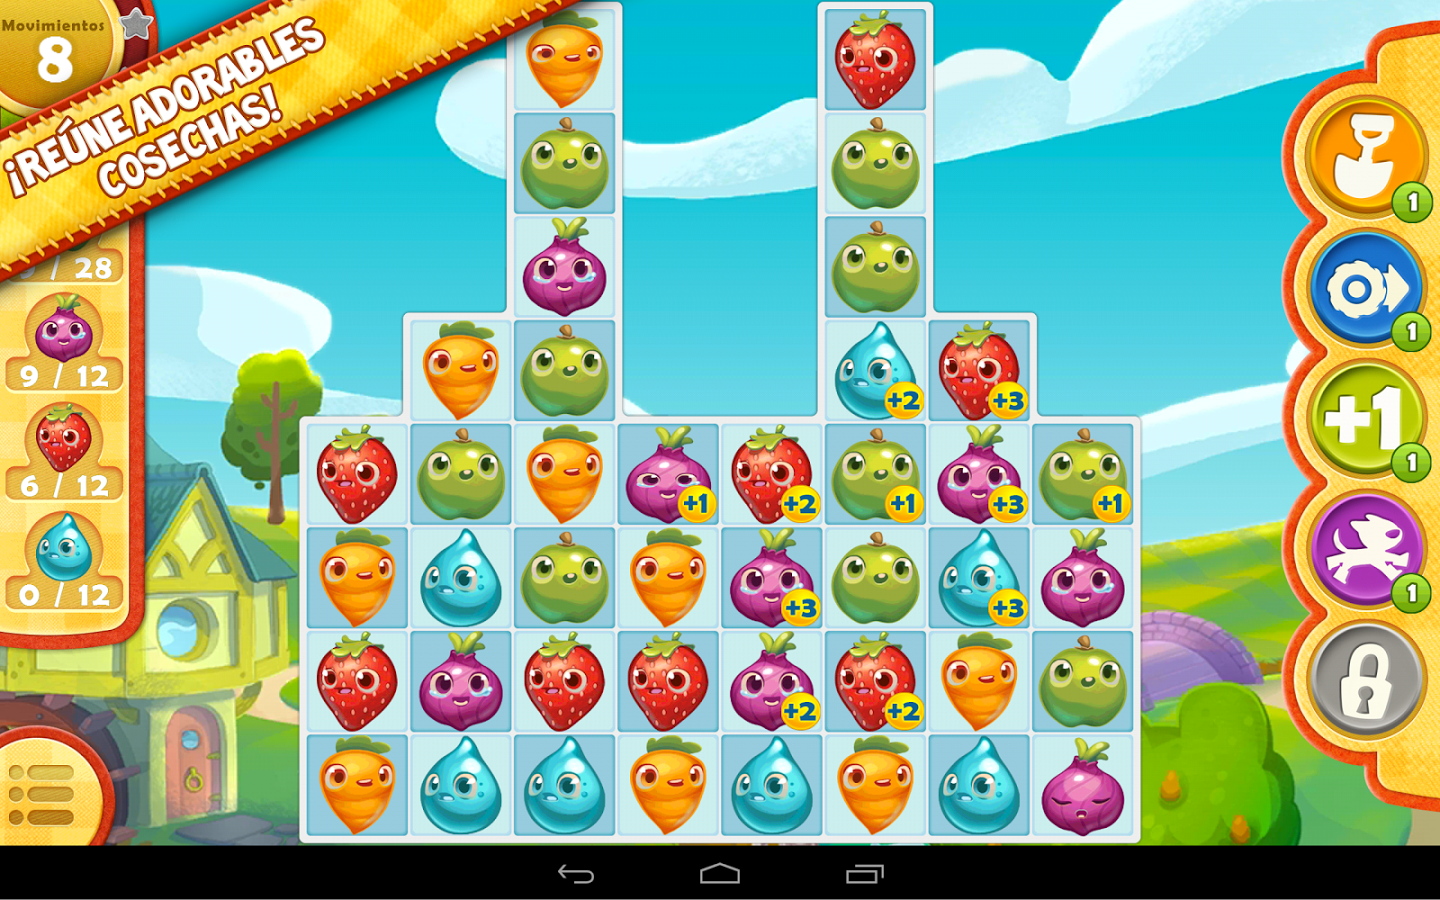 Related images to juegos gratis de puzzle